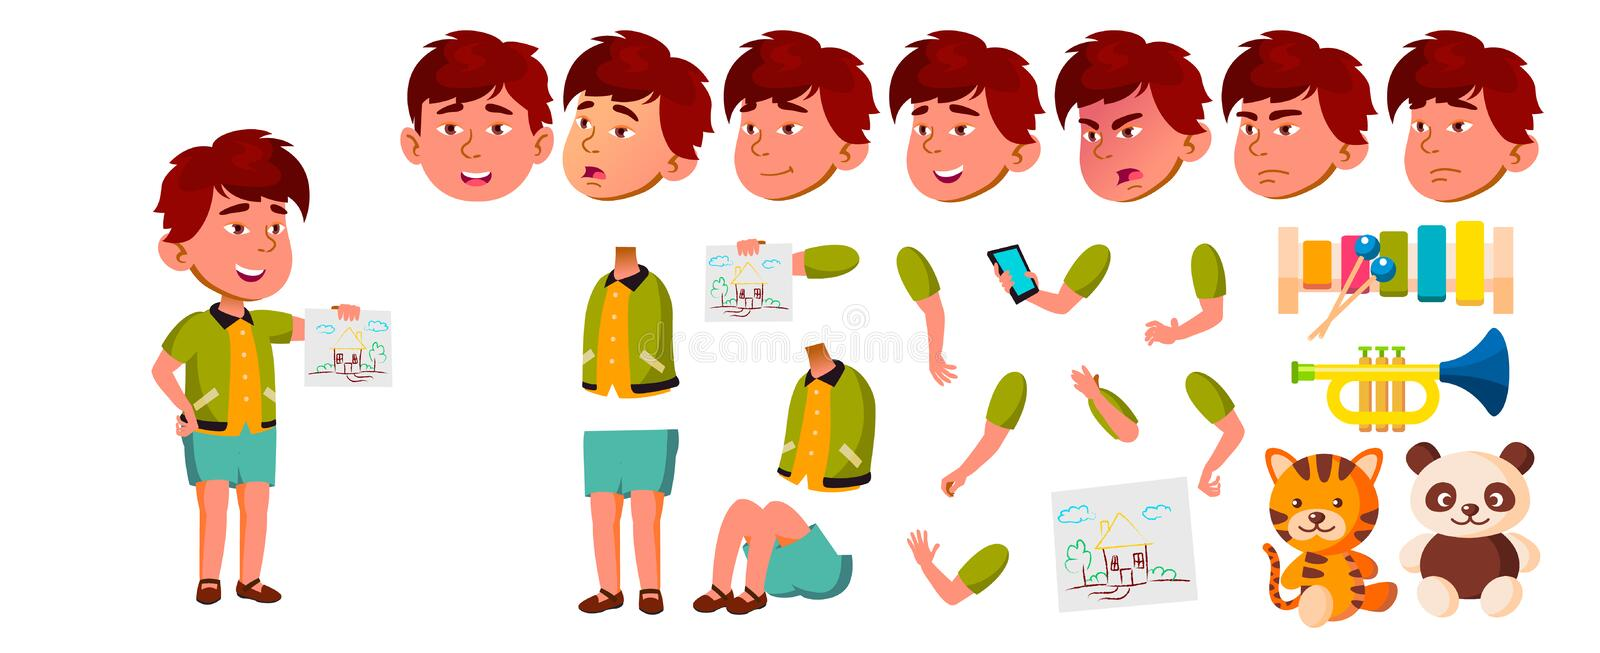 Asian Boy Kindergarten Kid Vector. Animation Creation Set. Face Emotions, Gestures. Playful Positive Small Baby. For Web. Poster, Booklet Design. Animated vector illustration